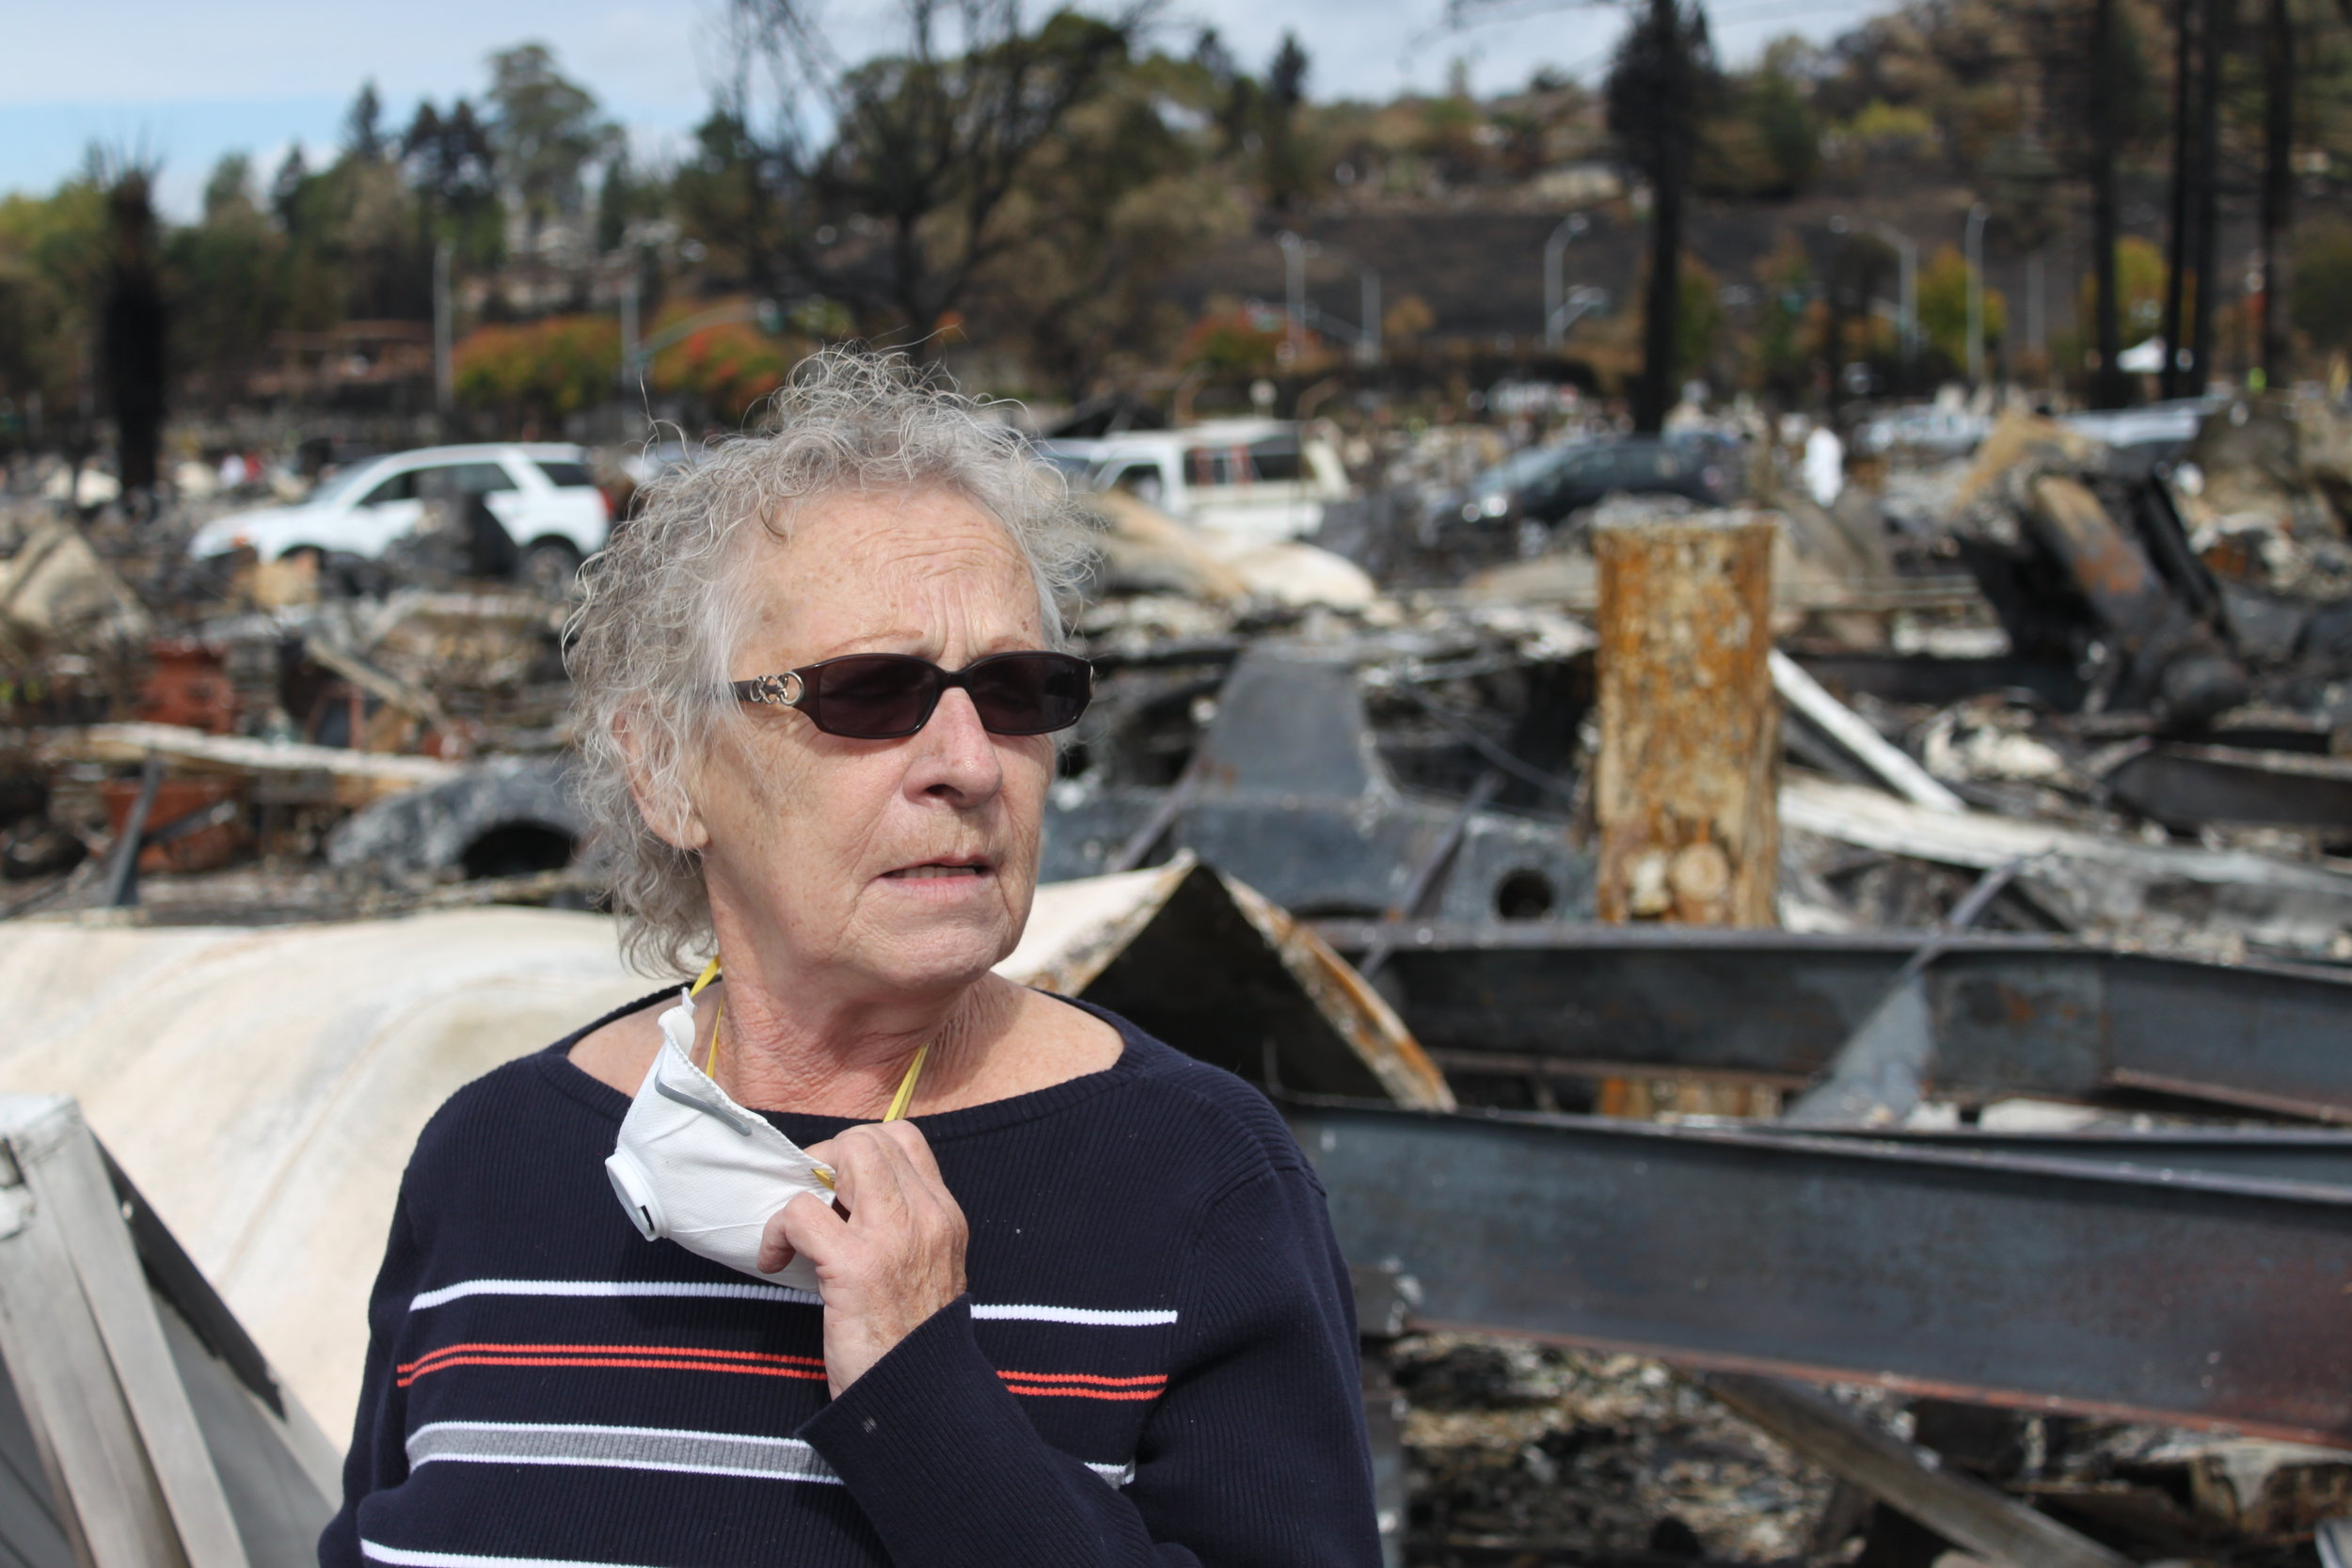 Zealand's grandma Judy takes in the destruction of what used to be her neighborhood.